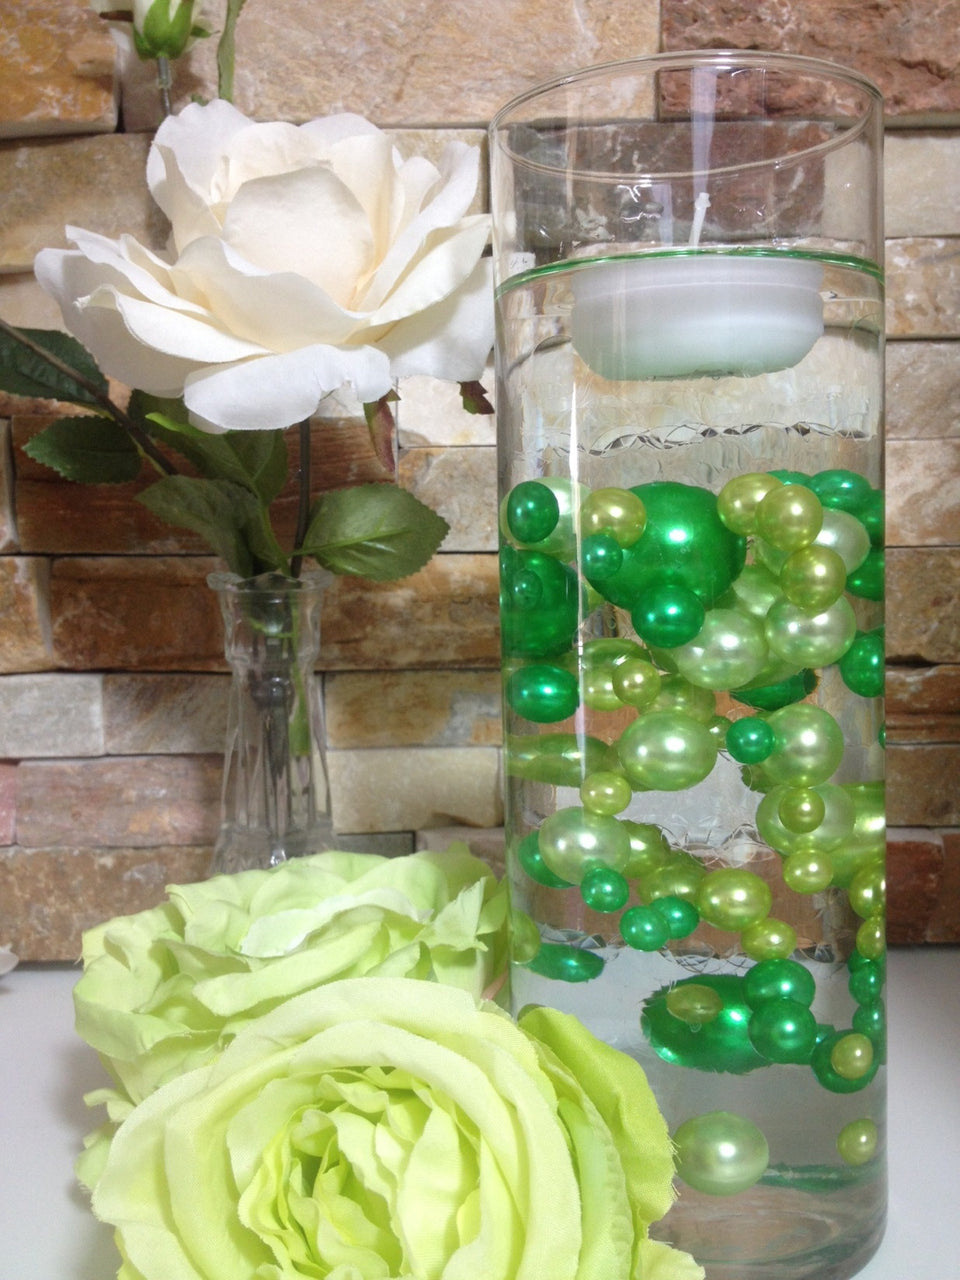 DIY Floating Pearl Centerpiece Vase Filler Lime/Green Pearls 80 Jumbo & Mix Size Pearls, No Hole Pearls